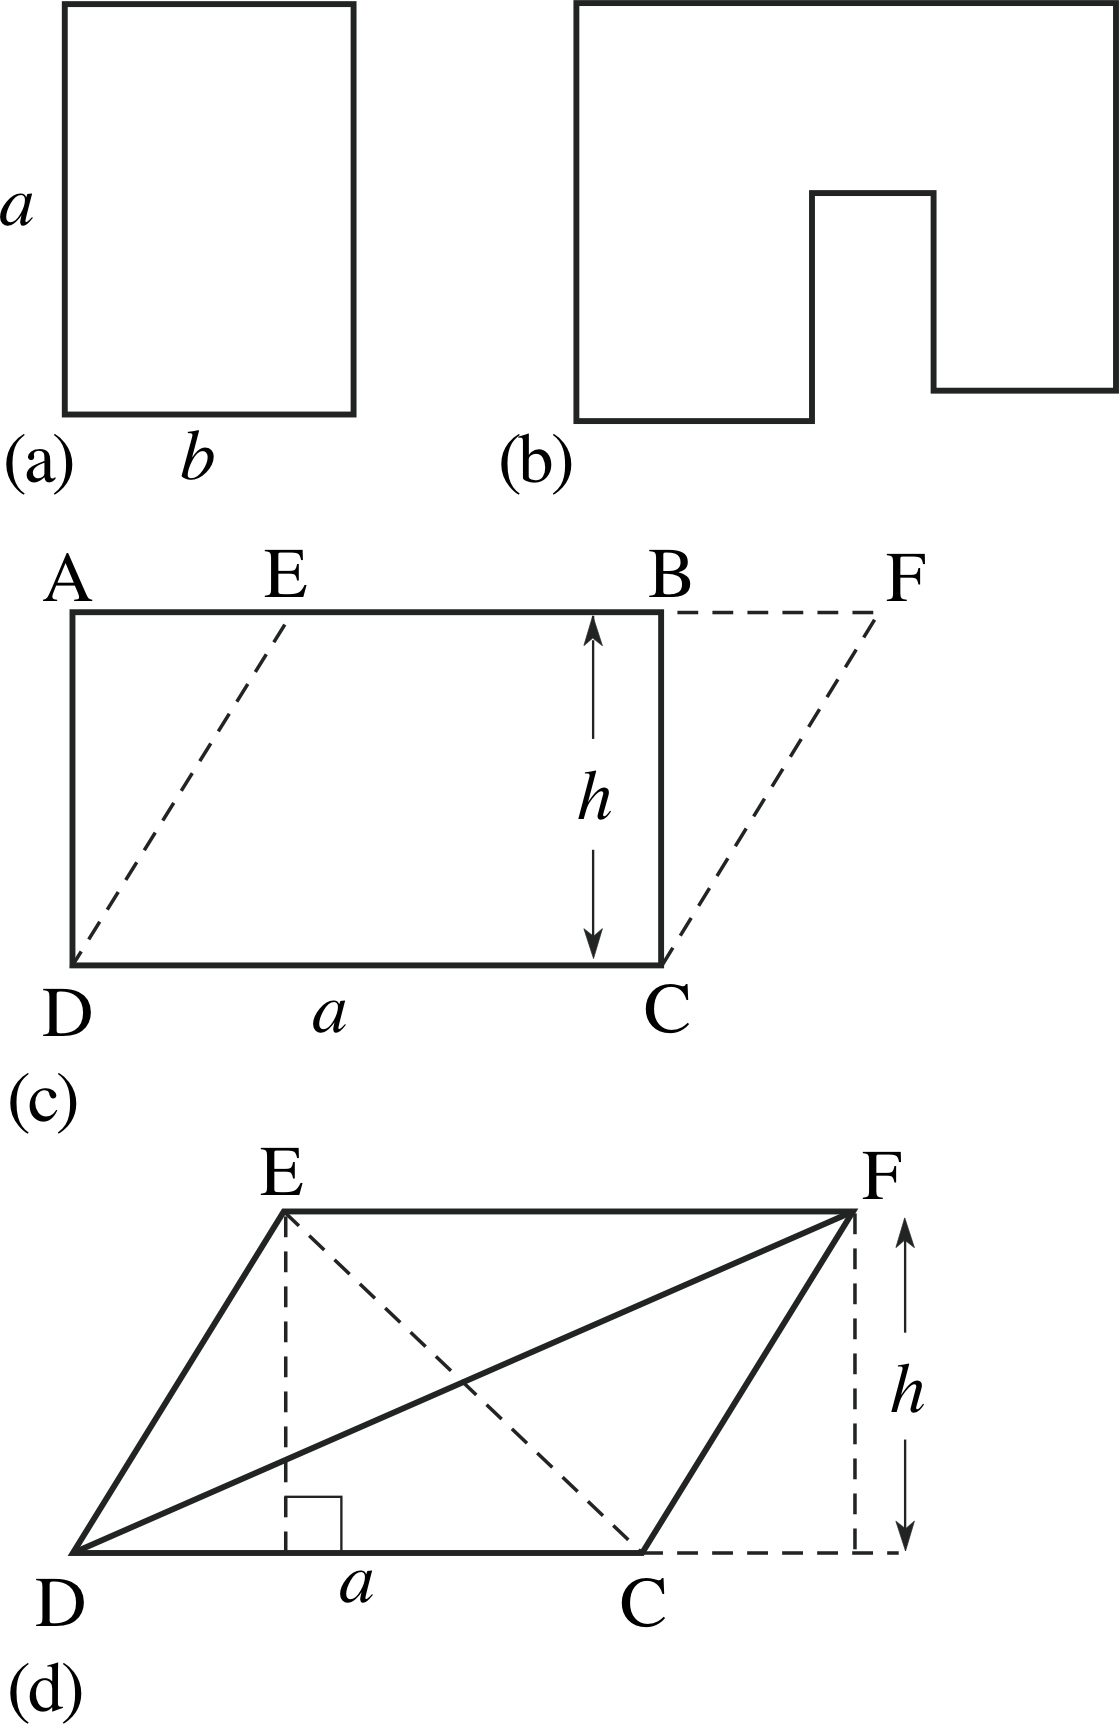 worksheet Area Of Triangles And Quadrilaterals pplato flap math 2 1 introducing geometry the areas of quadrilaterals and triangles